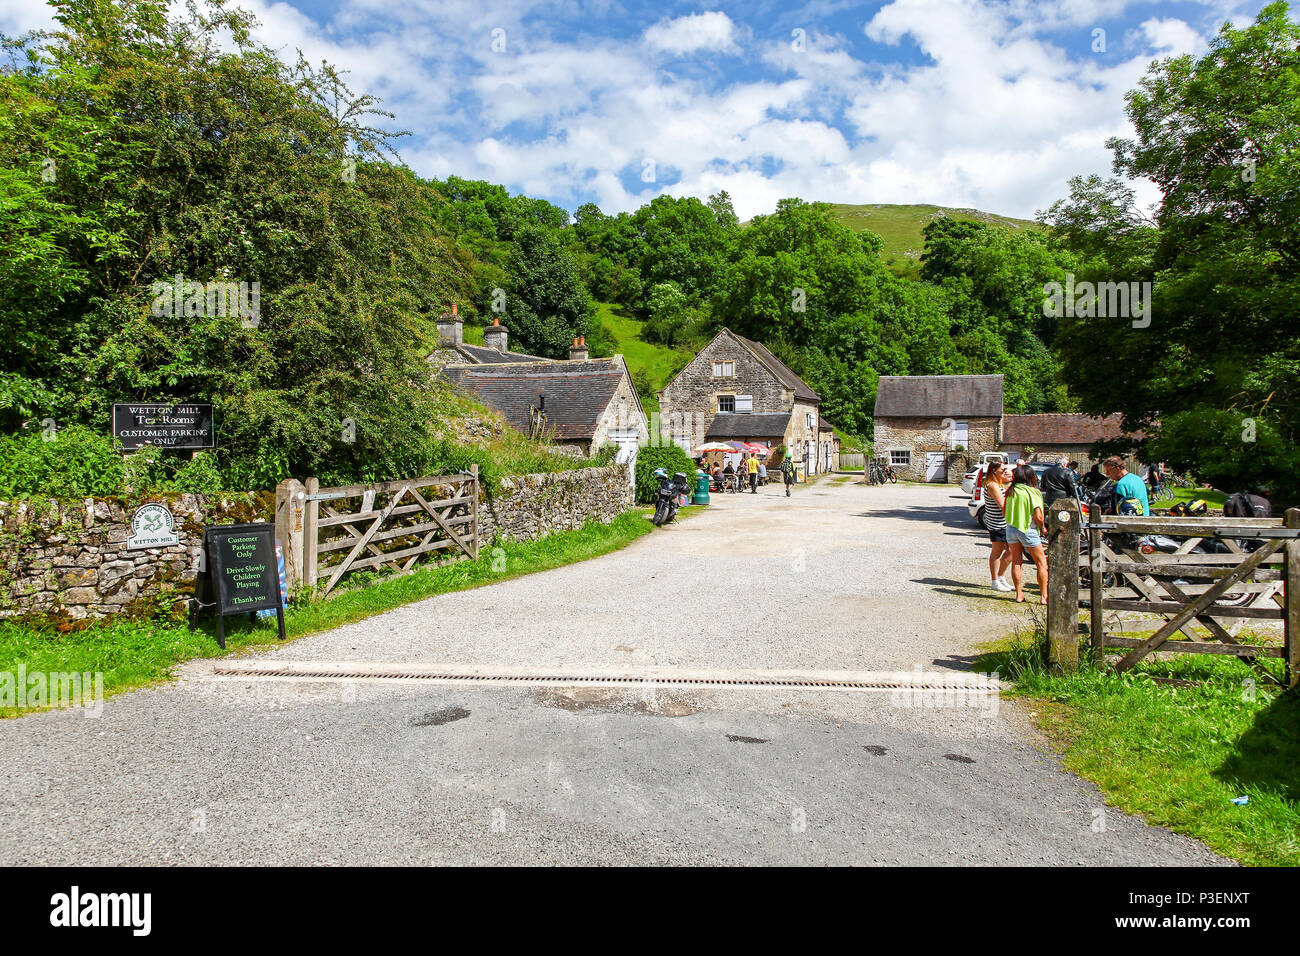 Wetton Mill Tea Rooms or cafe, Wetton Mill, Staffordshire, England, UK - Stock Image